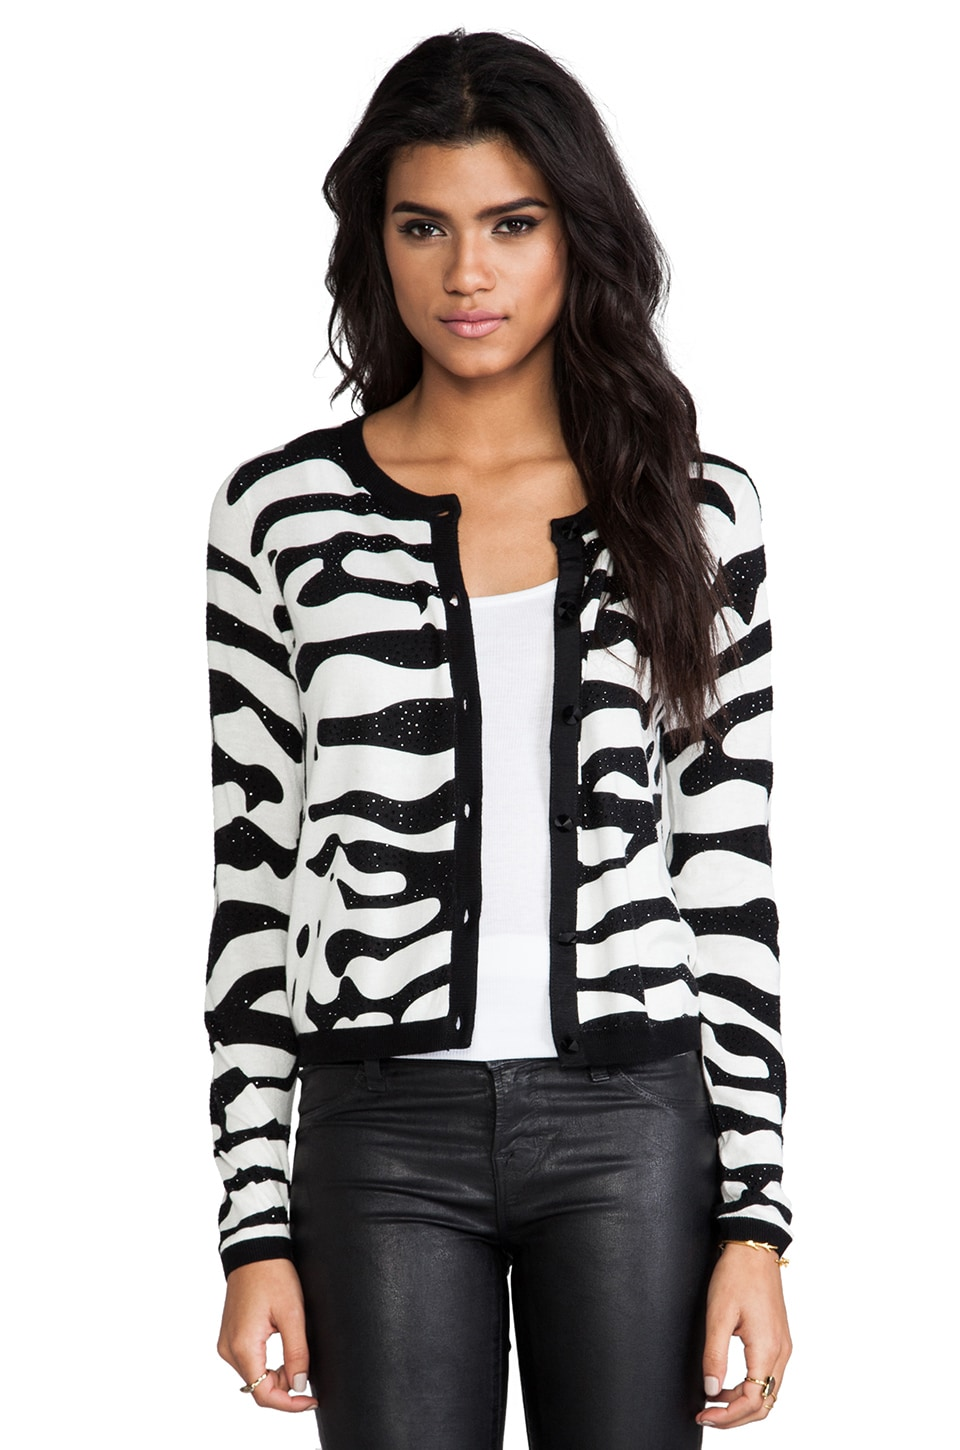 Alice + Olivia Zebra Cardigan in Black & White